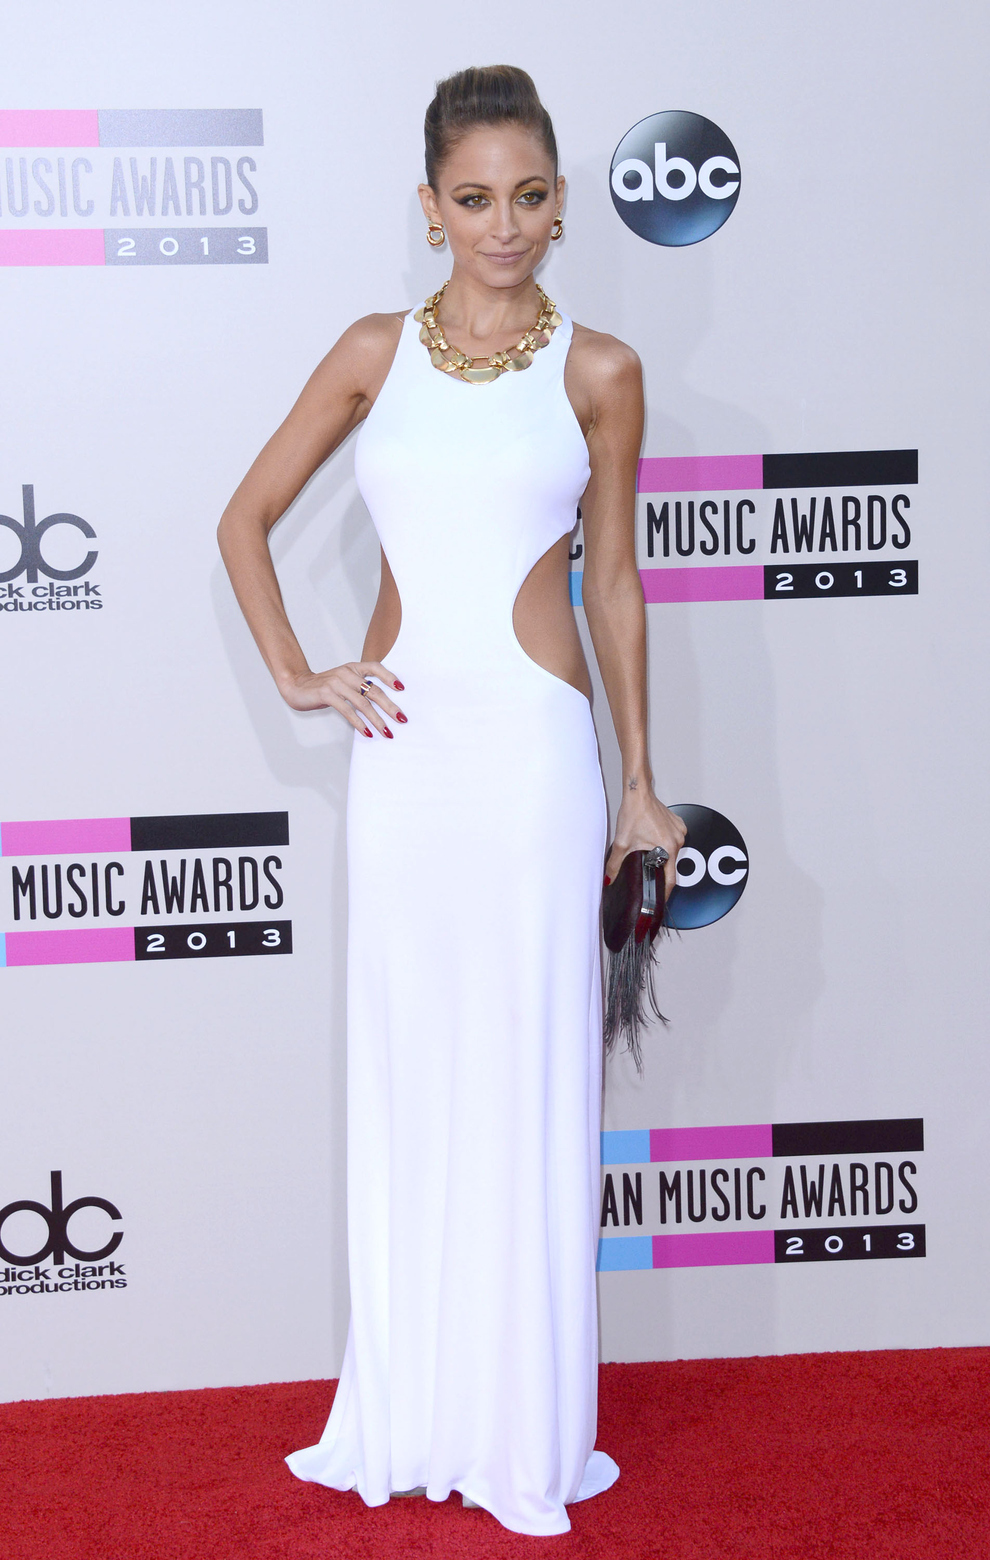 Nicole Richie At The 2013 American Music Awards In L.A.